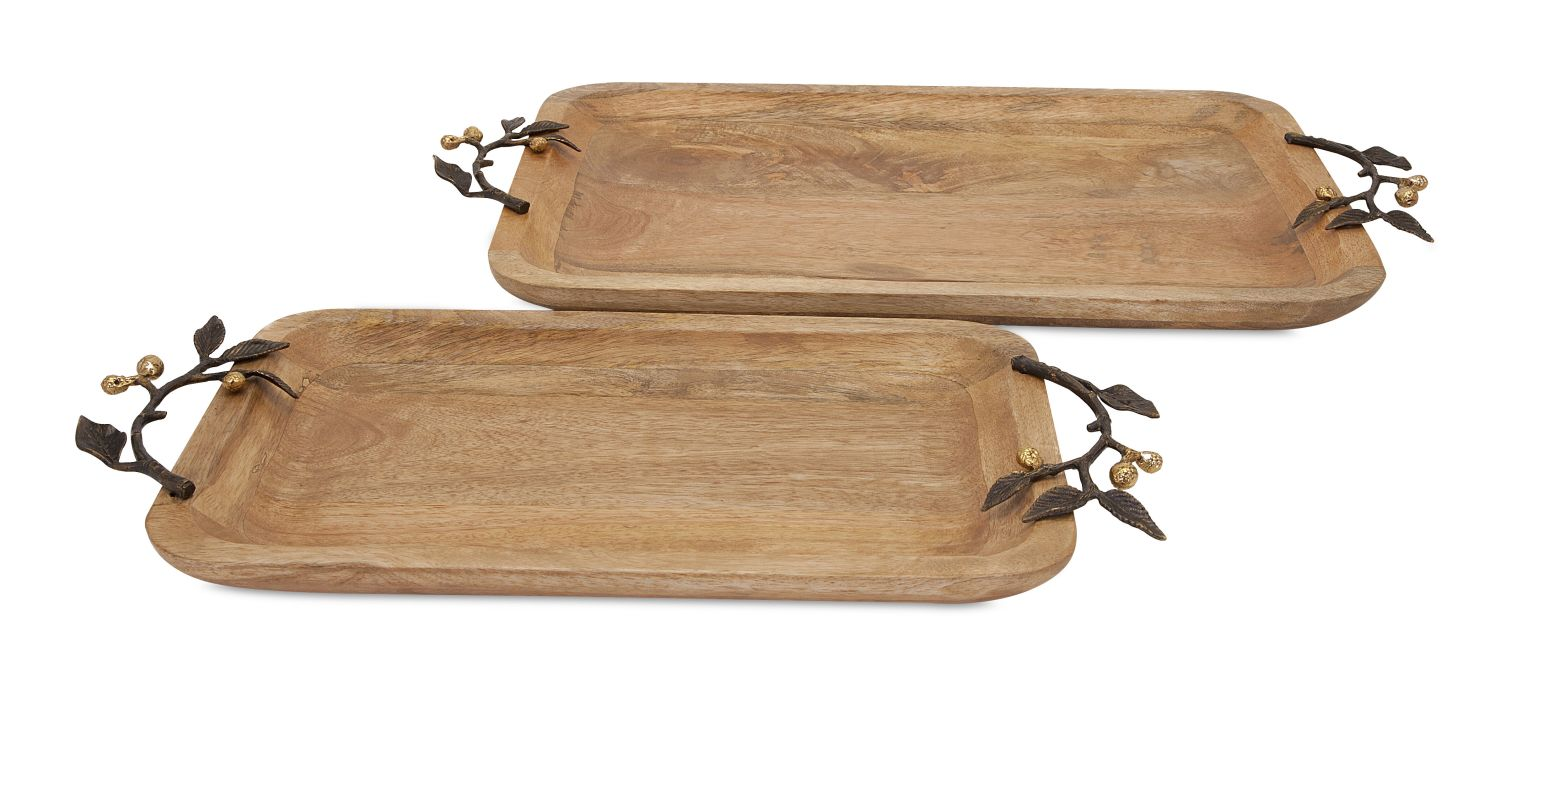 IMAX Home 71755-2 Victoria Trays with Brass Handles - Set of 2 N/A